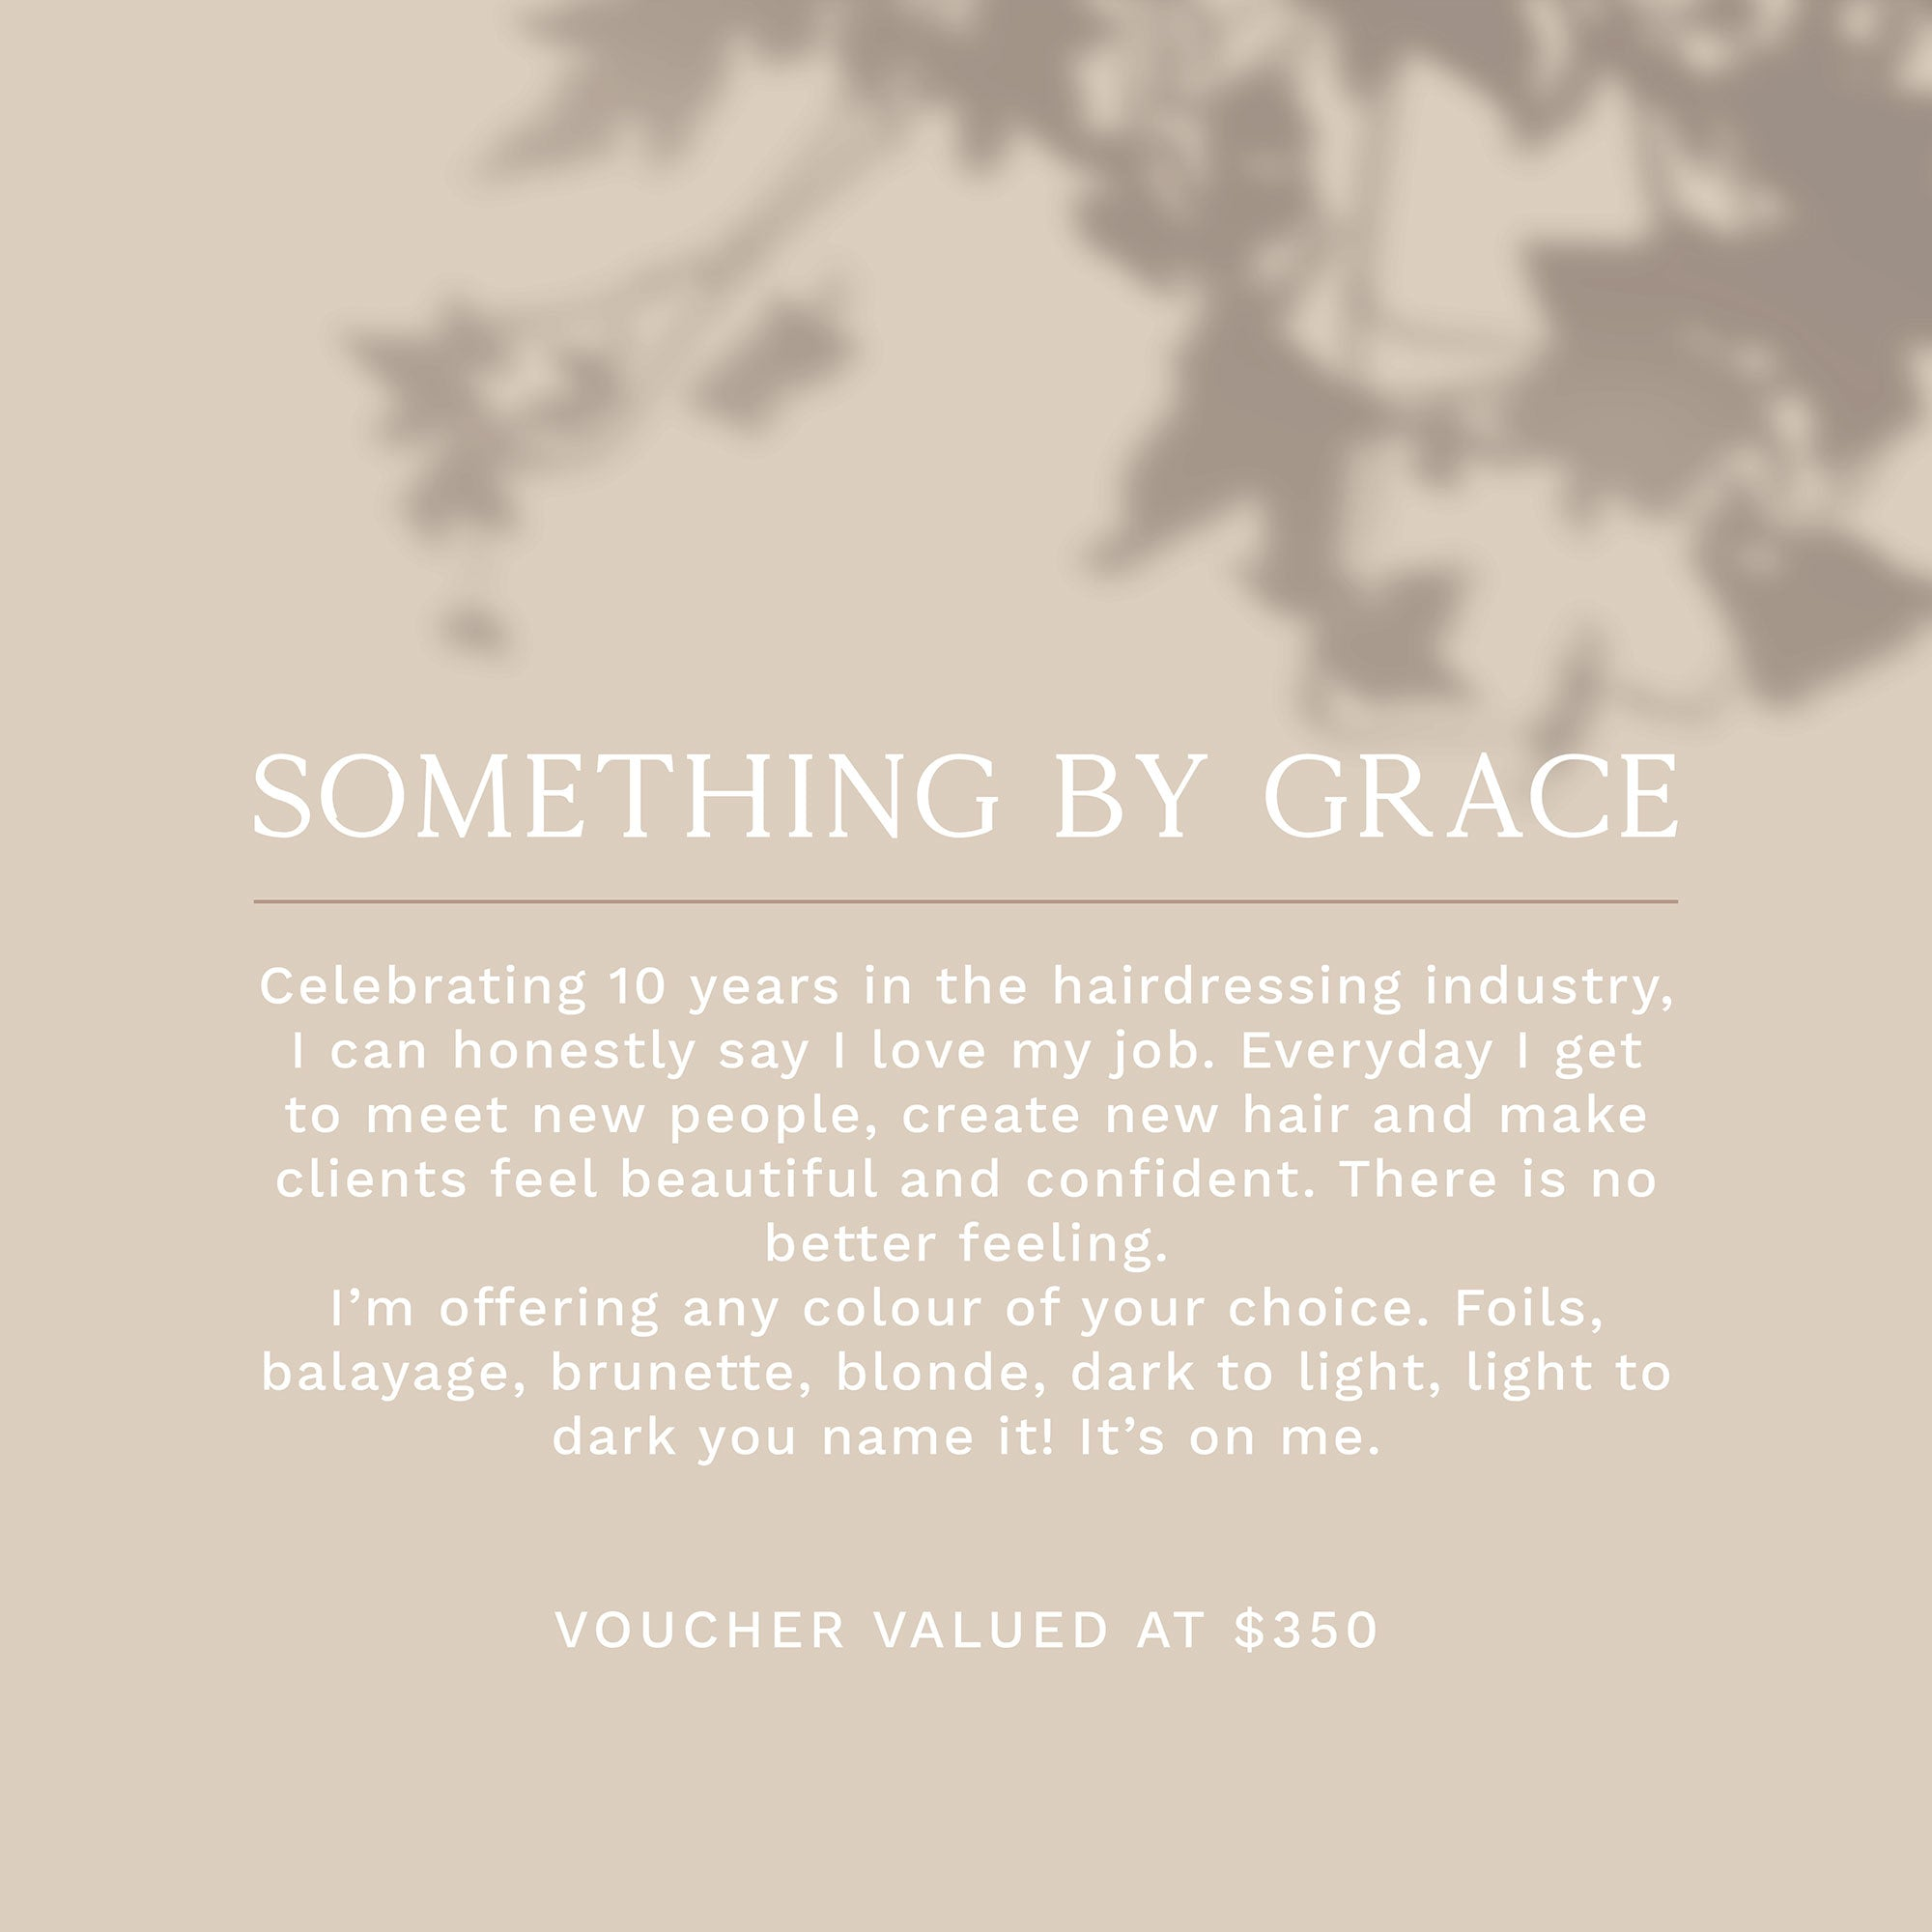 Something by Grace